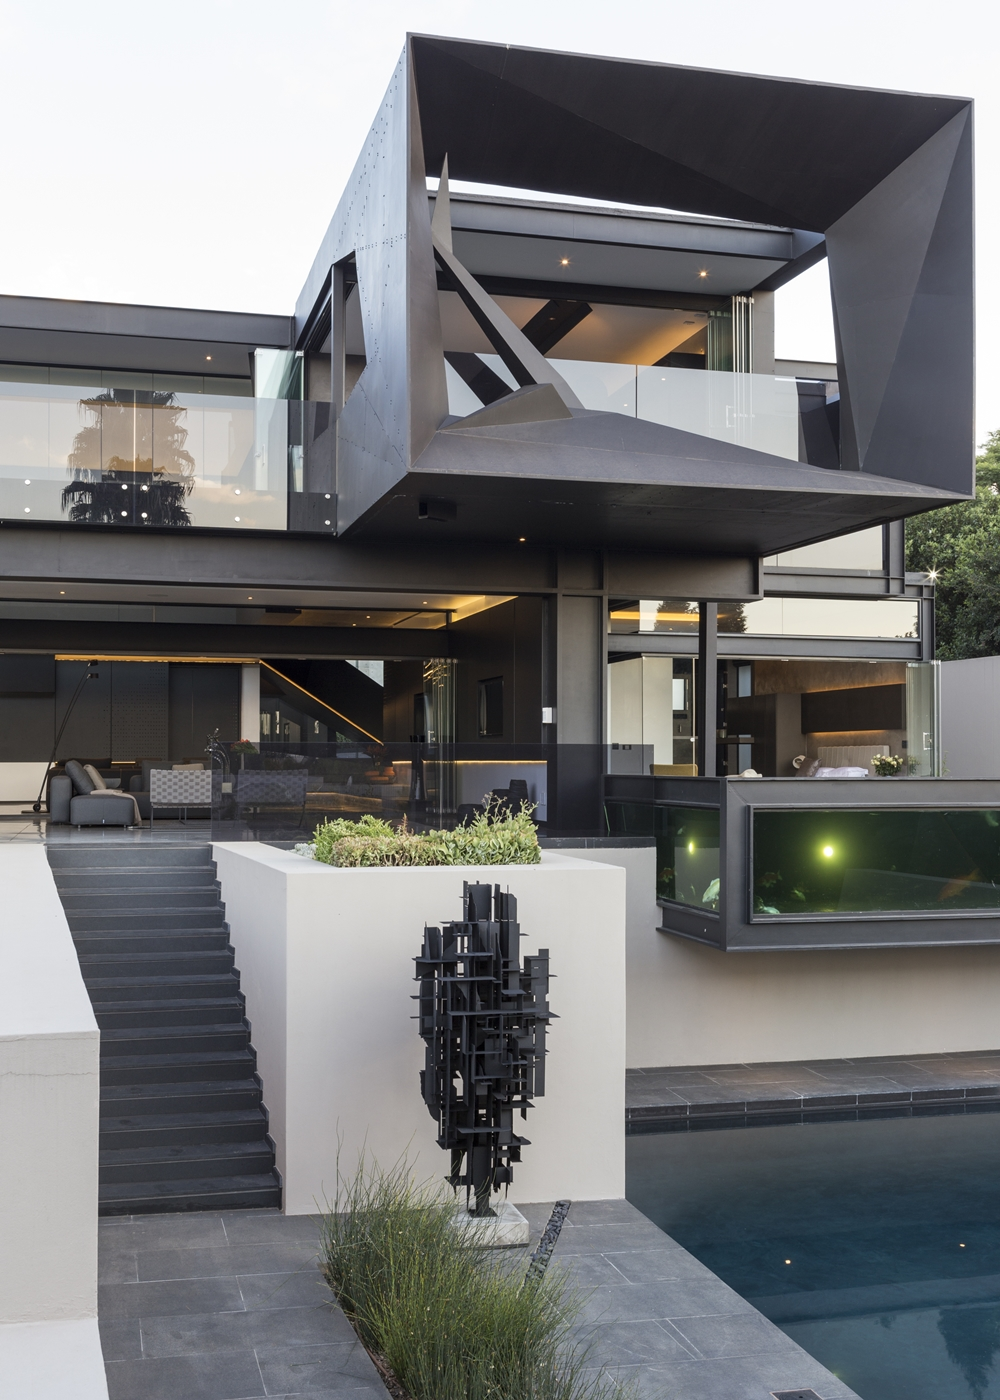 Best houses in the world amazing kloof road house for Best house designs